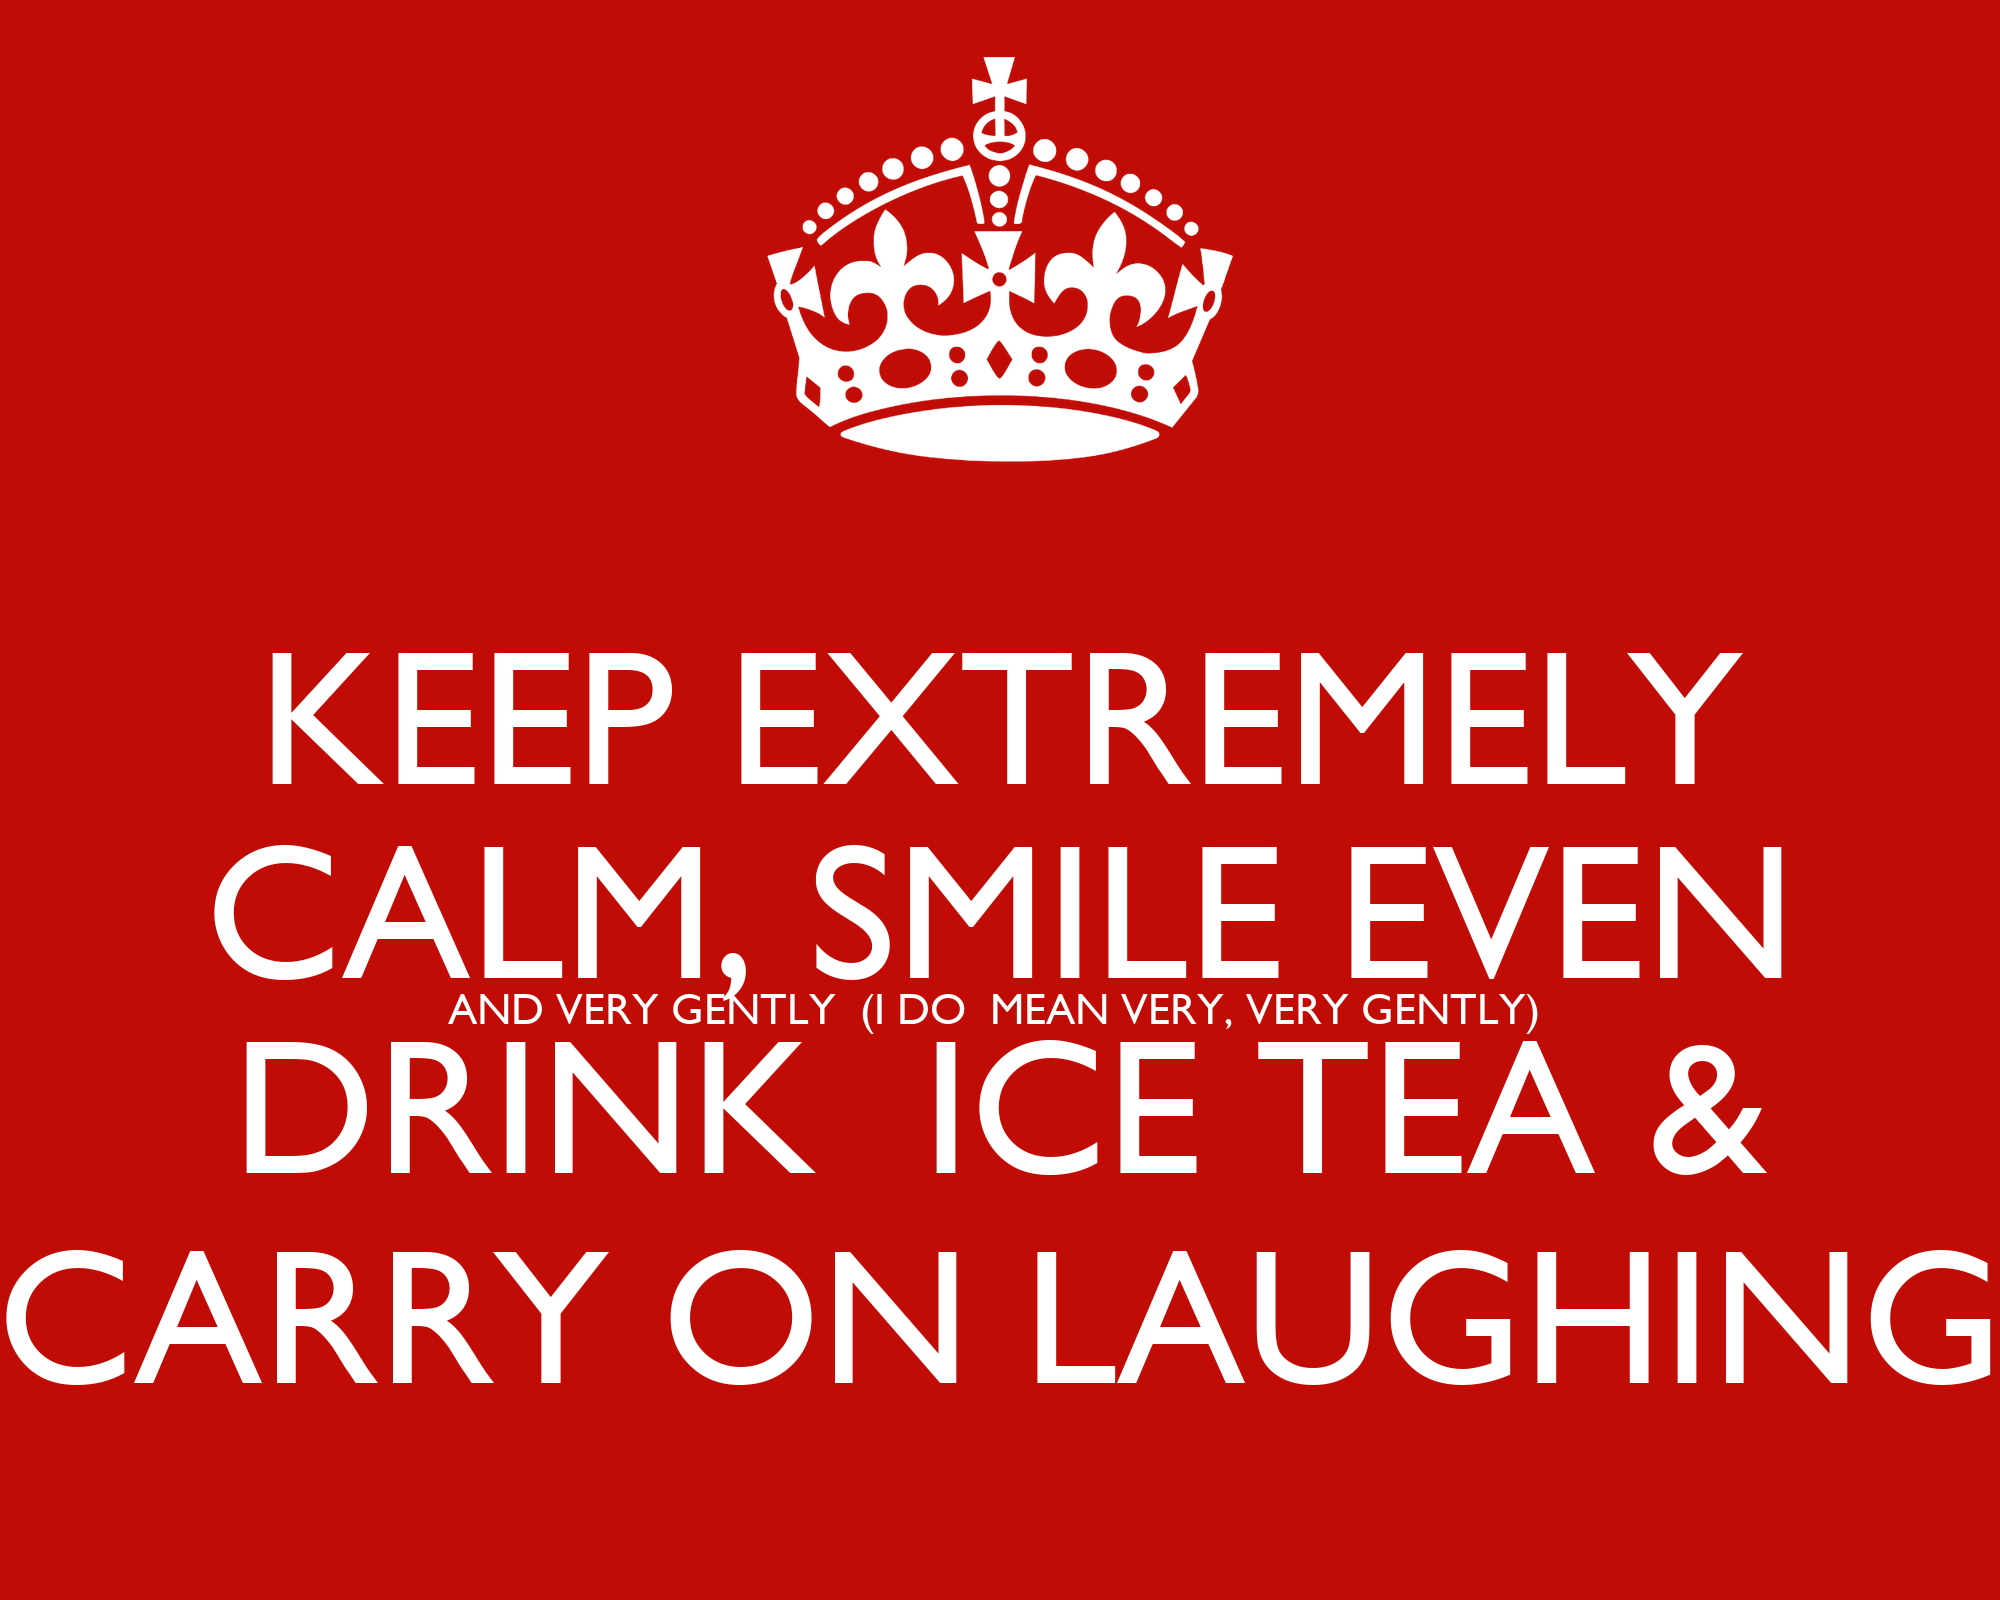 KEEP EXTREMELY CALM, SMILE EVEN AND VERY GENTLY (I DO MEAN